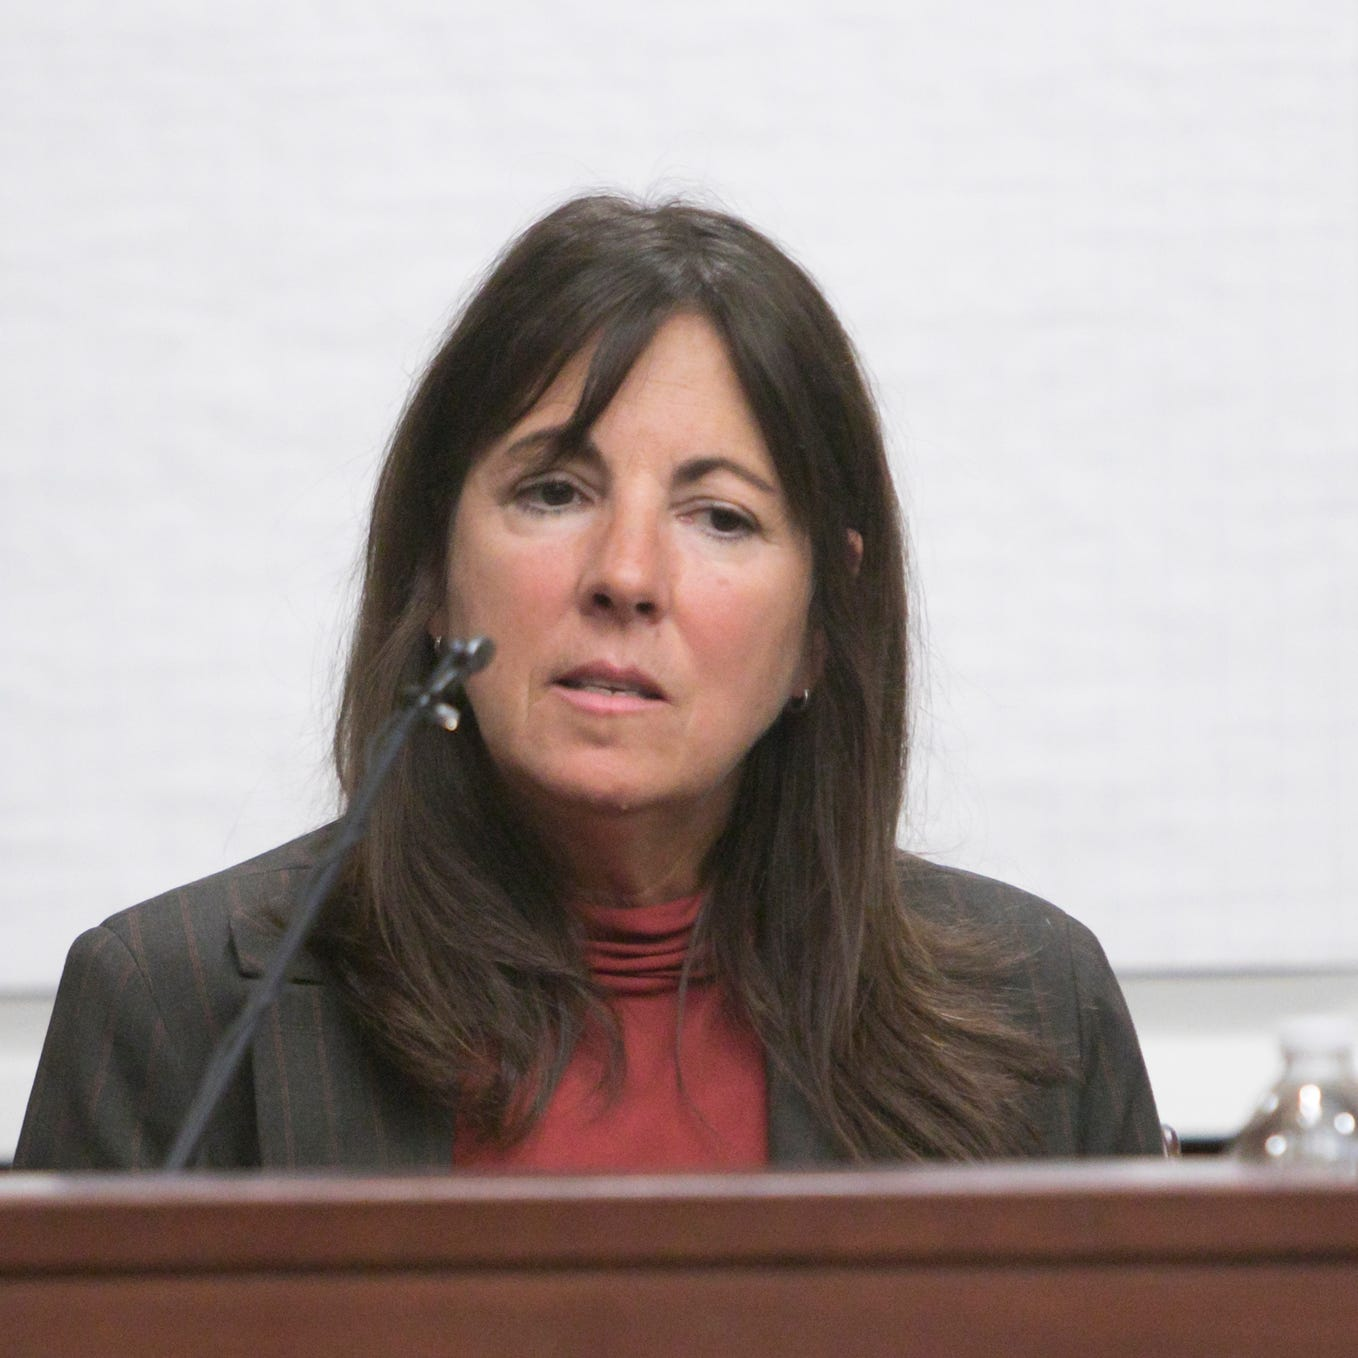 Federal judge dismisses lawsuit against Judge Theresa Brennan